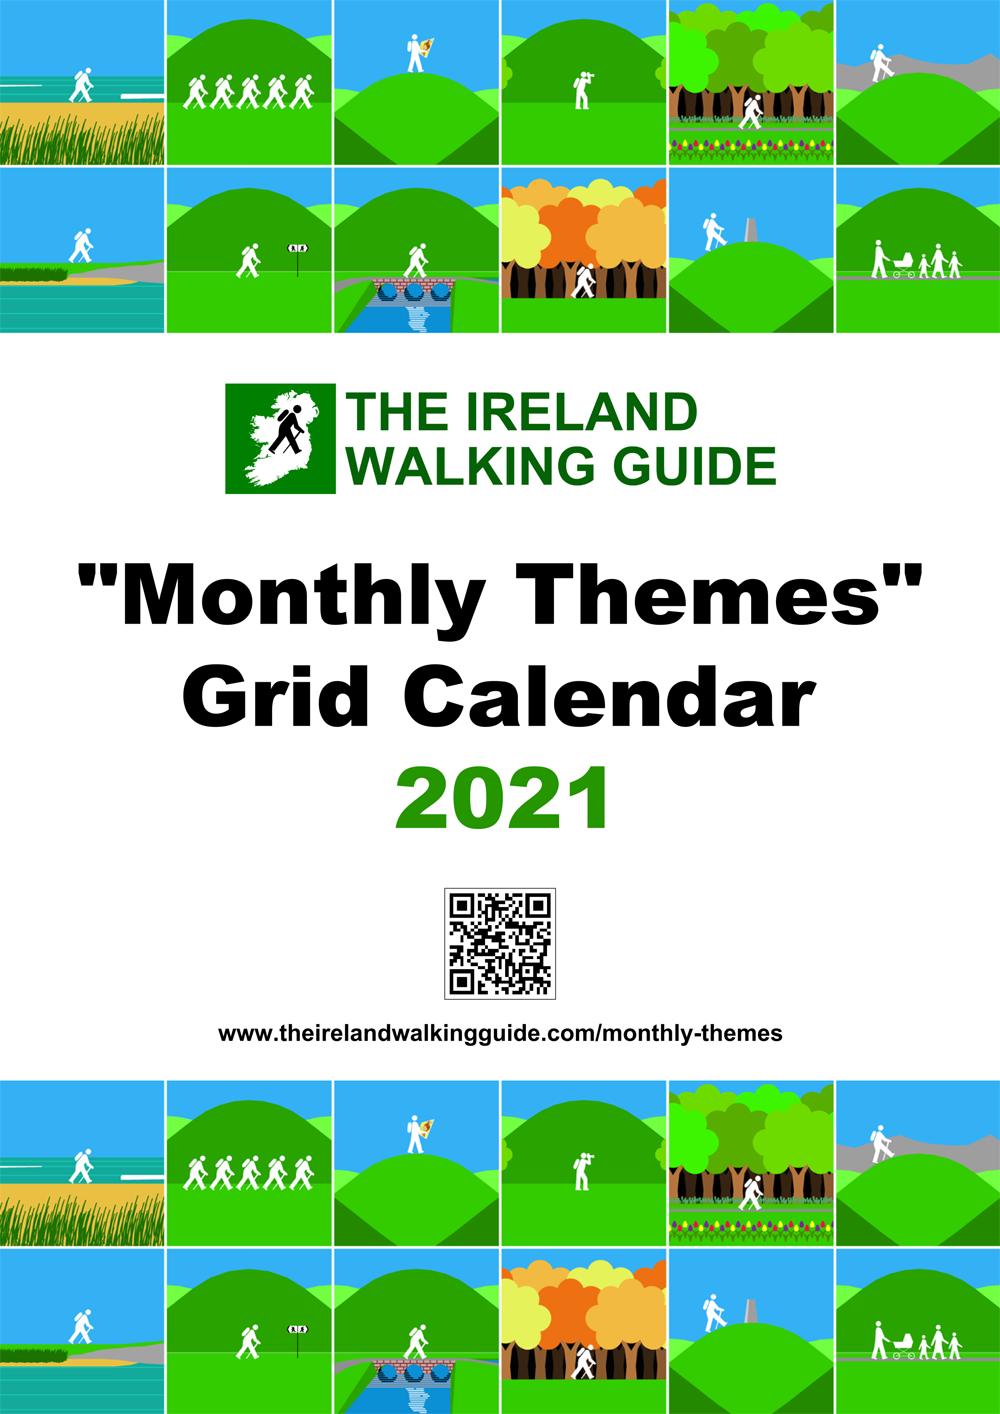 The Ireland Walking Guide 2021 Monthly Themes Grid Calendar